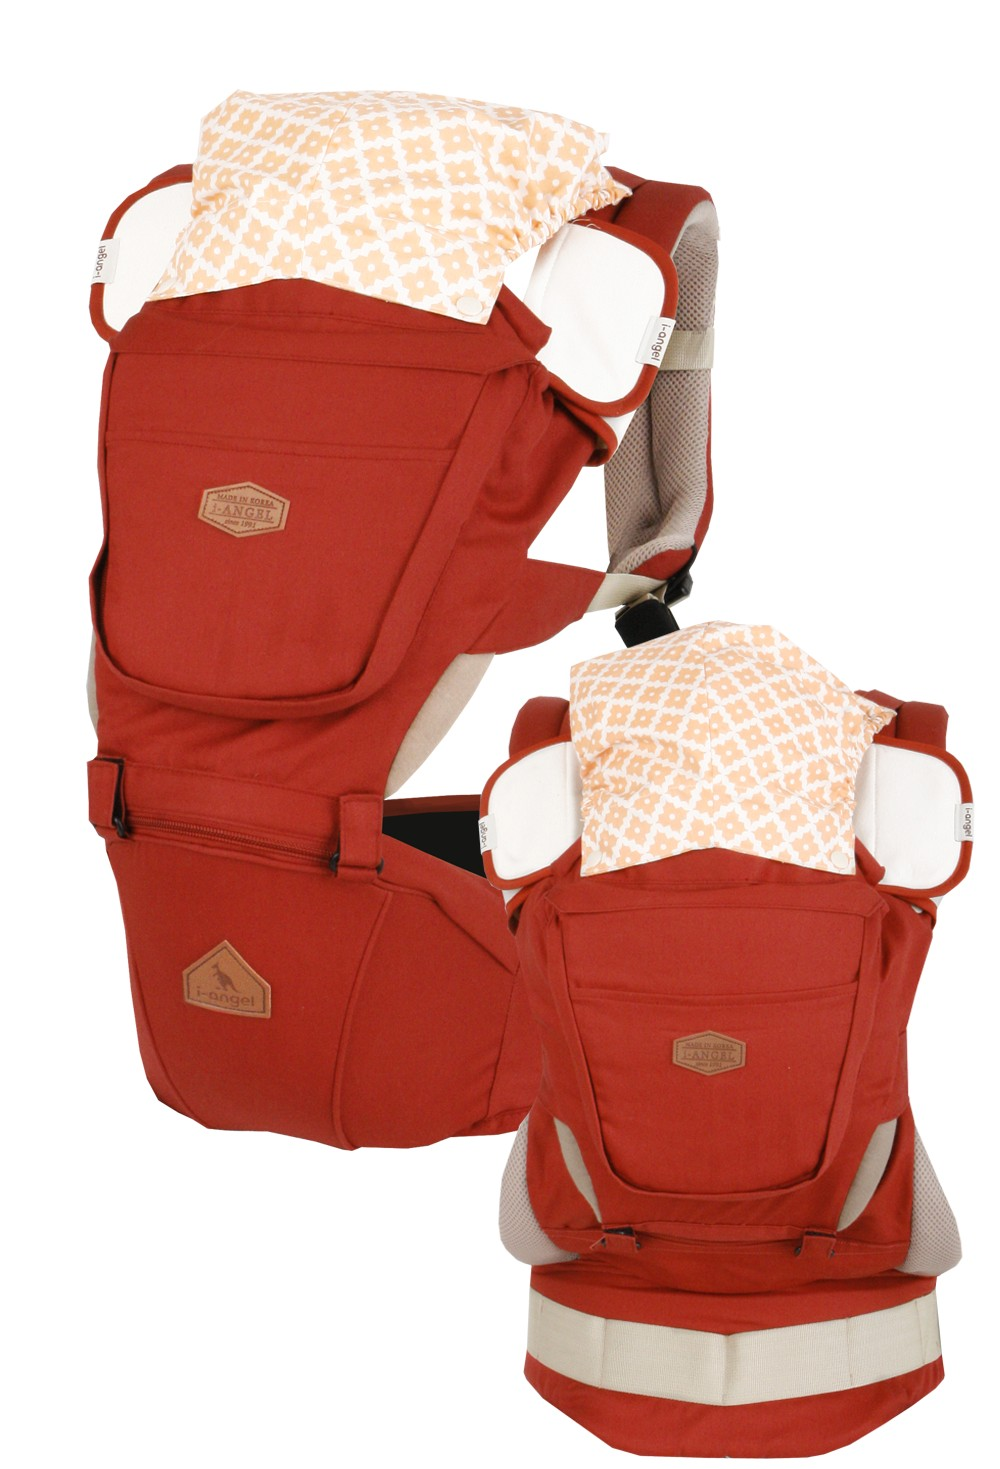 I-ANGEL HIPSEAT CARRIER - Rainbow - Mighty Baby PH